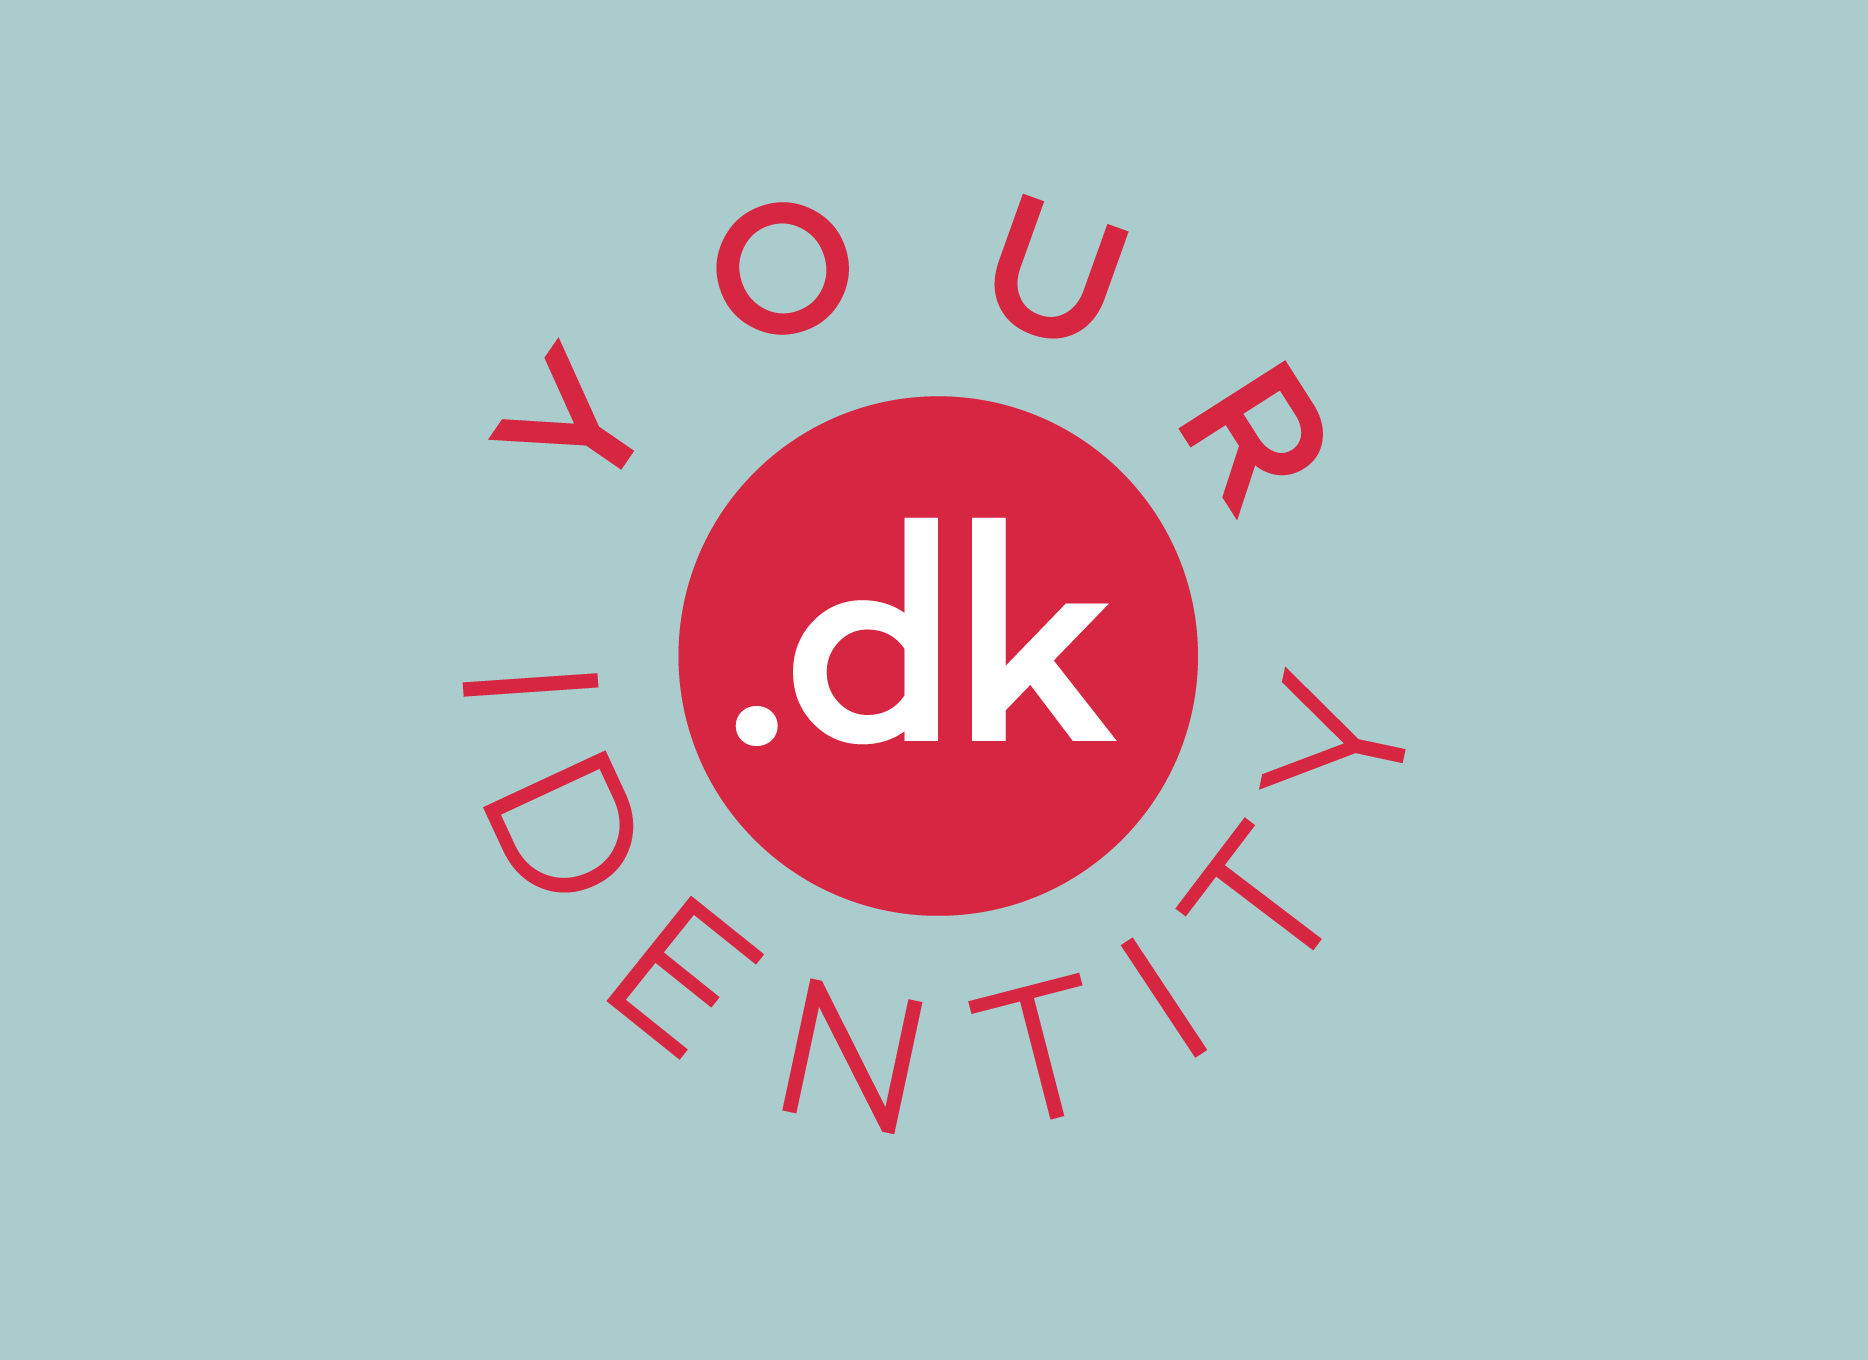 Your .dk identity